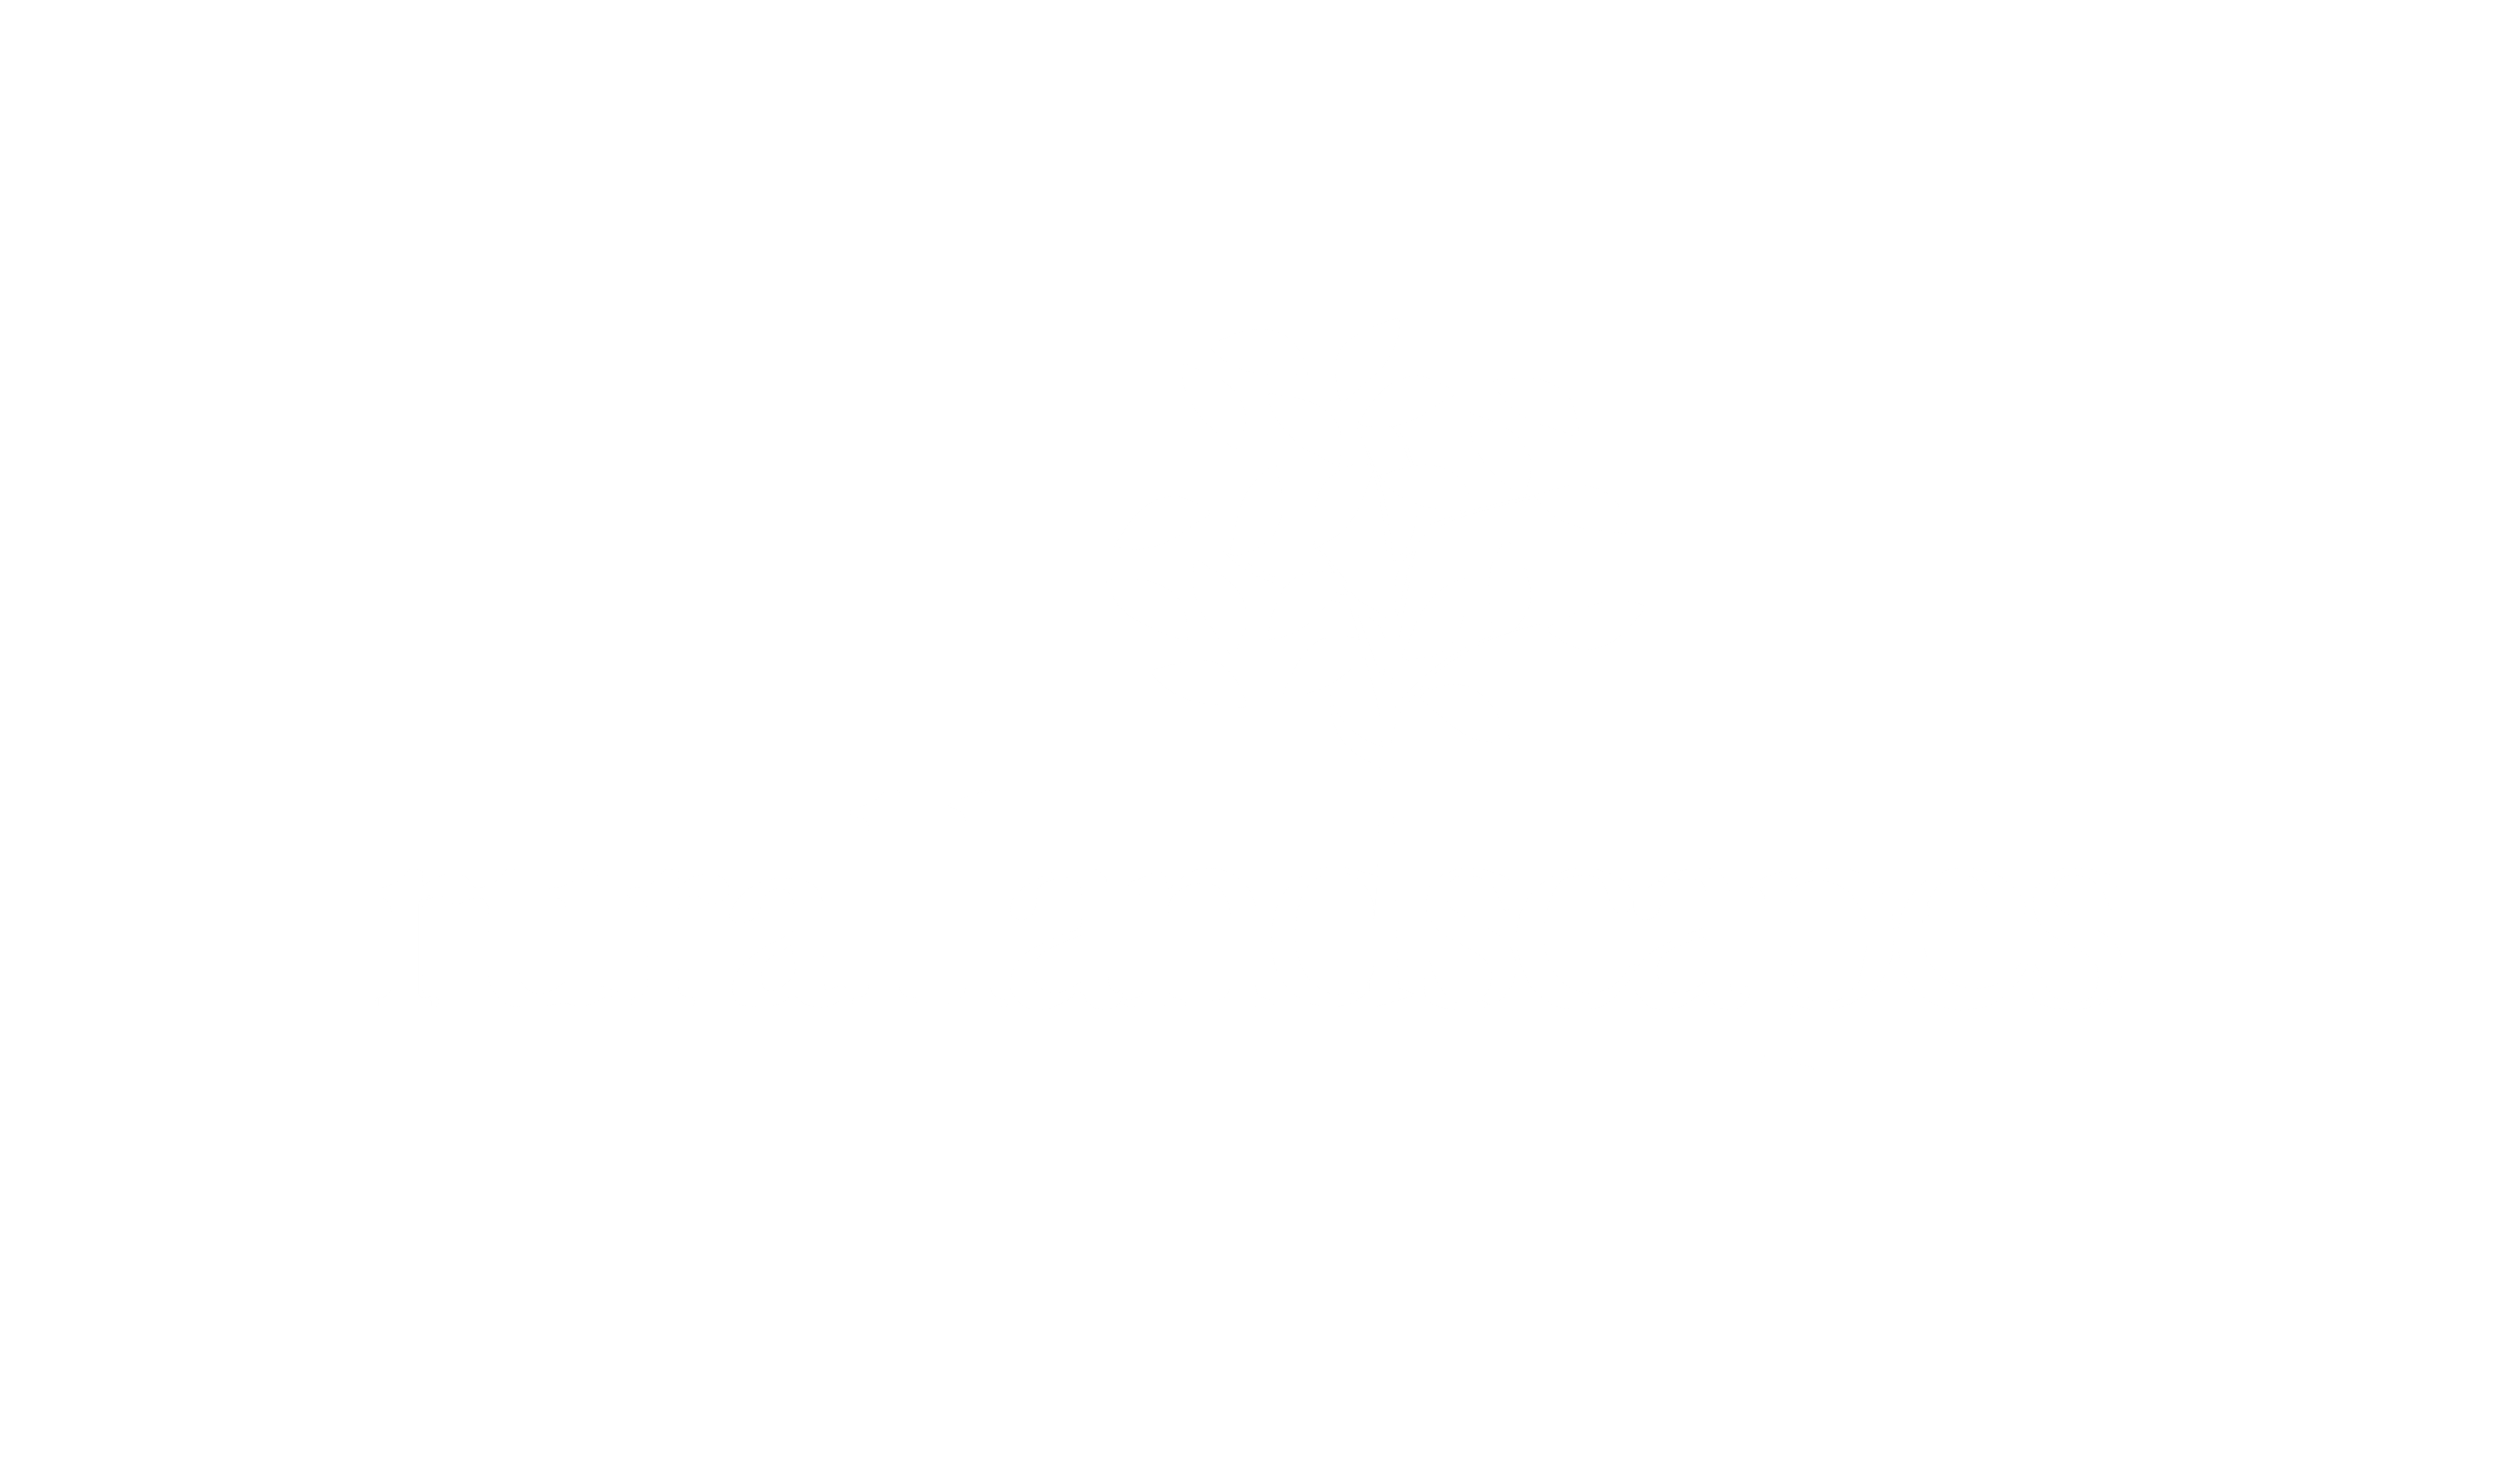 Rural Landscapes Cumbria are garden makeover specialists based in the heart of the Eden Valley and offer a vast range of quality landscape gardening services. See our reviews on Yell.com